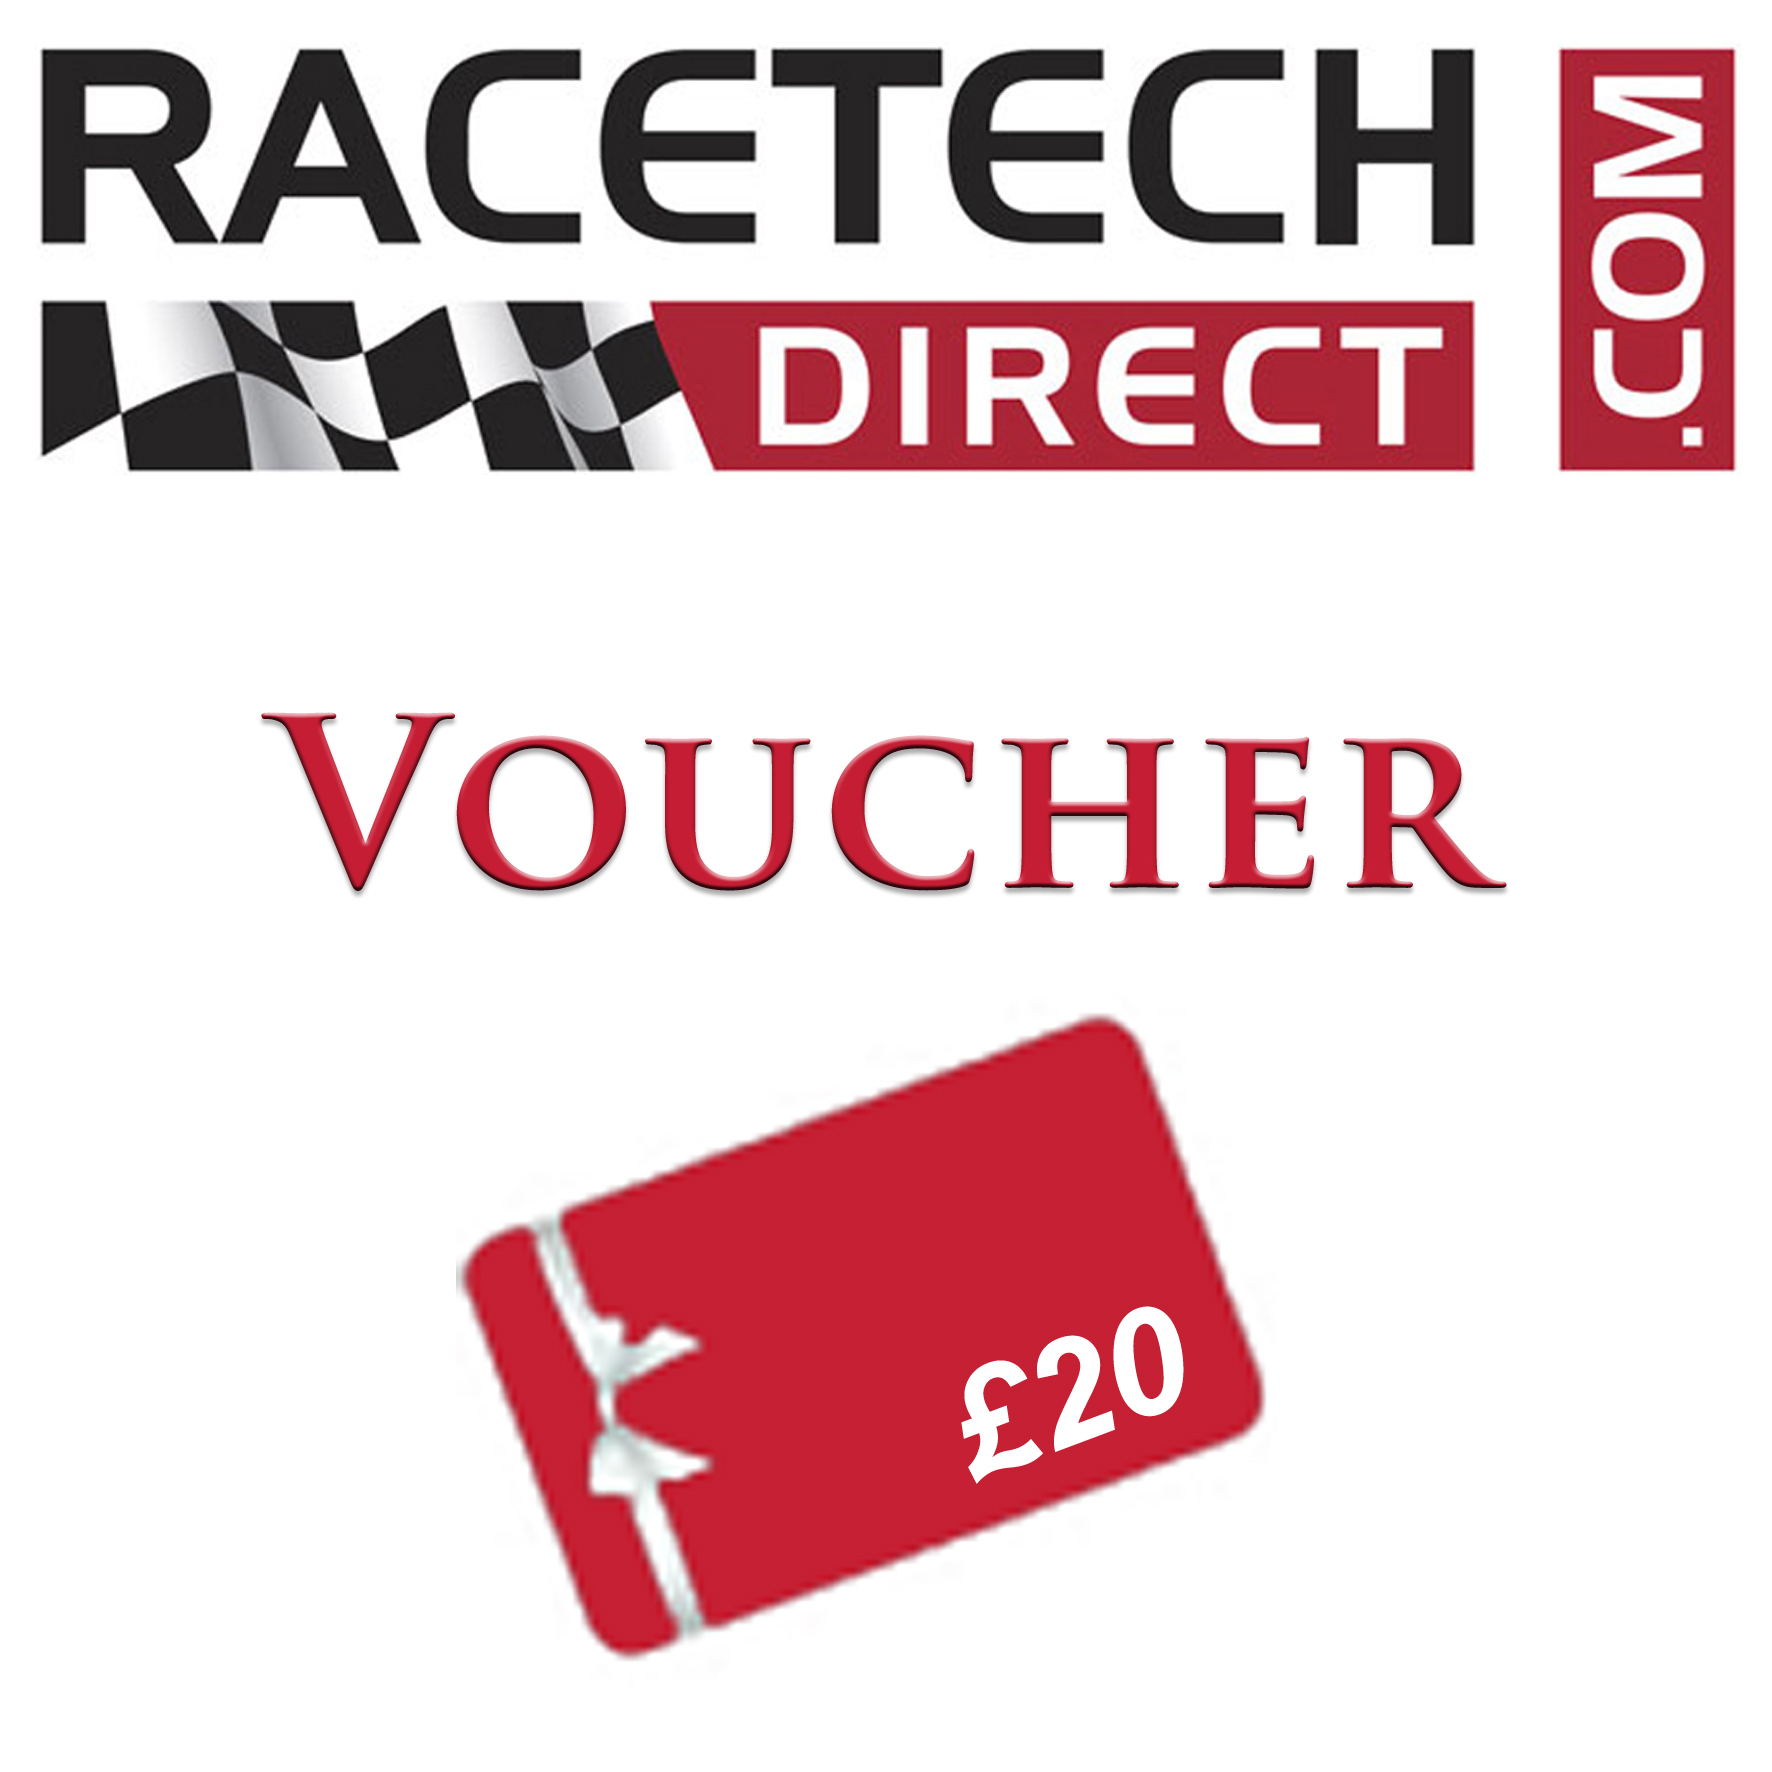 Racetech - Part No. TVR RDGIFT20 Racetech Direct £20 Gift Voucher